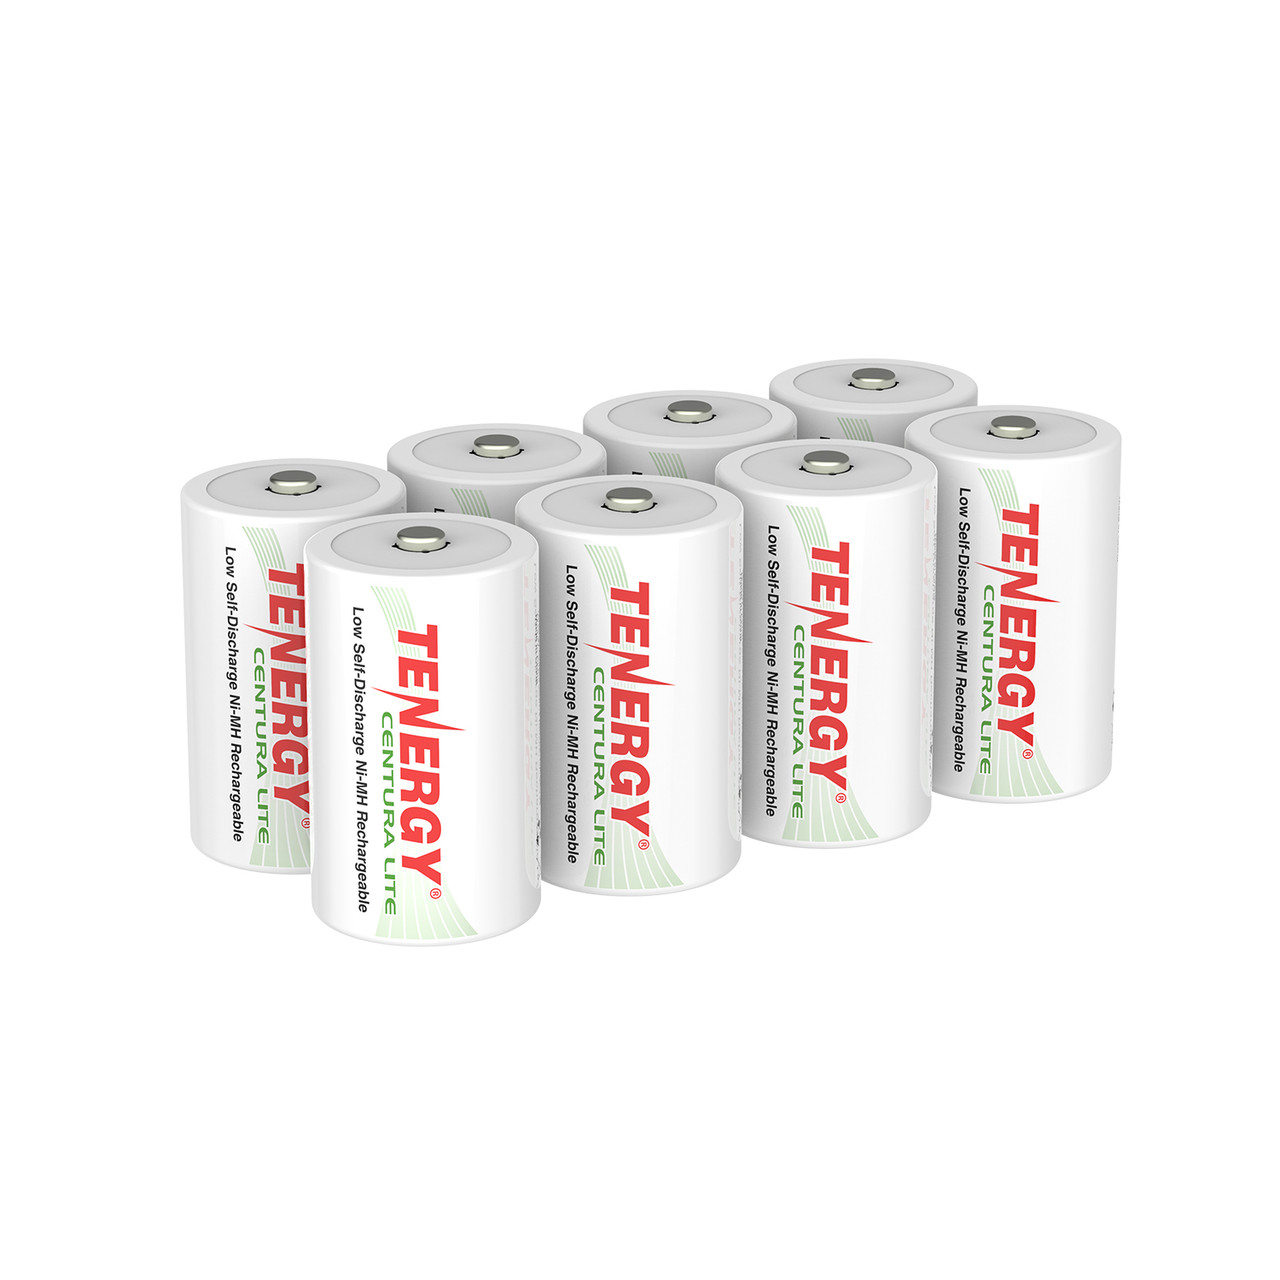 UL Certified 8000mAh Low Self Discharge D Cell Batteries Tenergy Centura 1.2V NiMH Rechargeable D Battery 4 Pack Pre-Charged D Size Battery